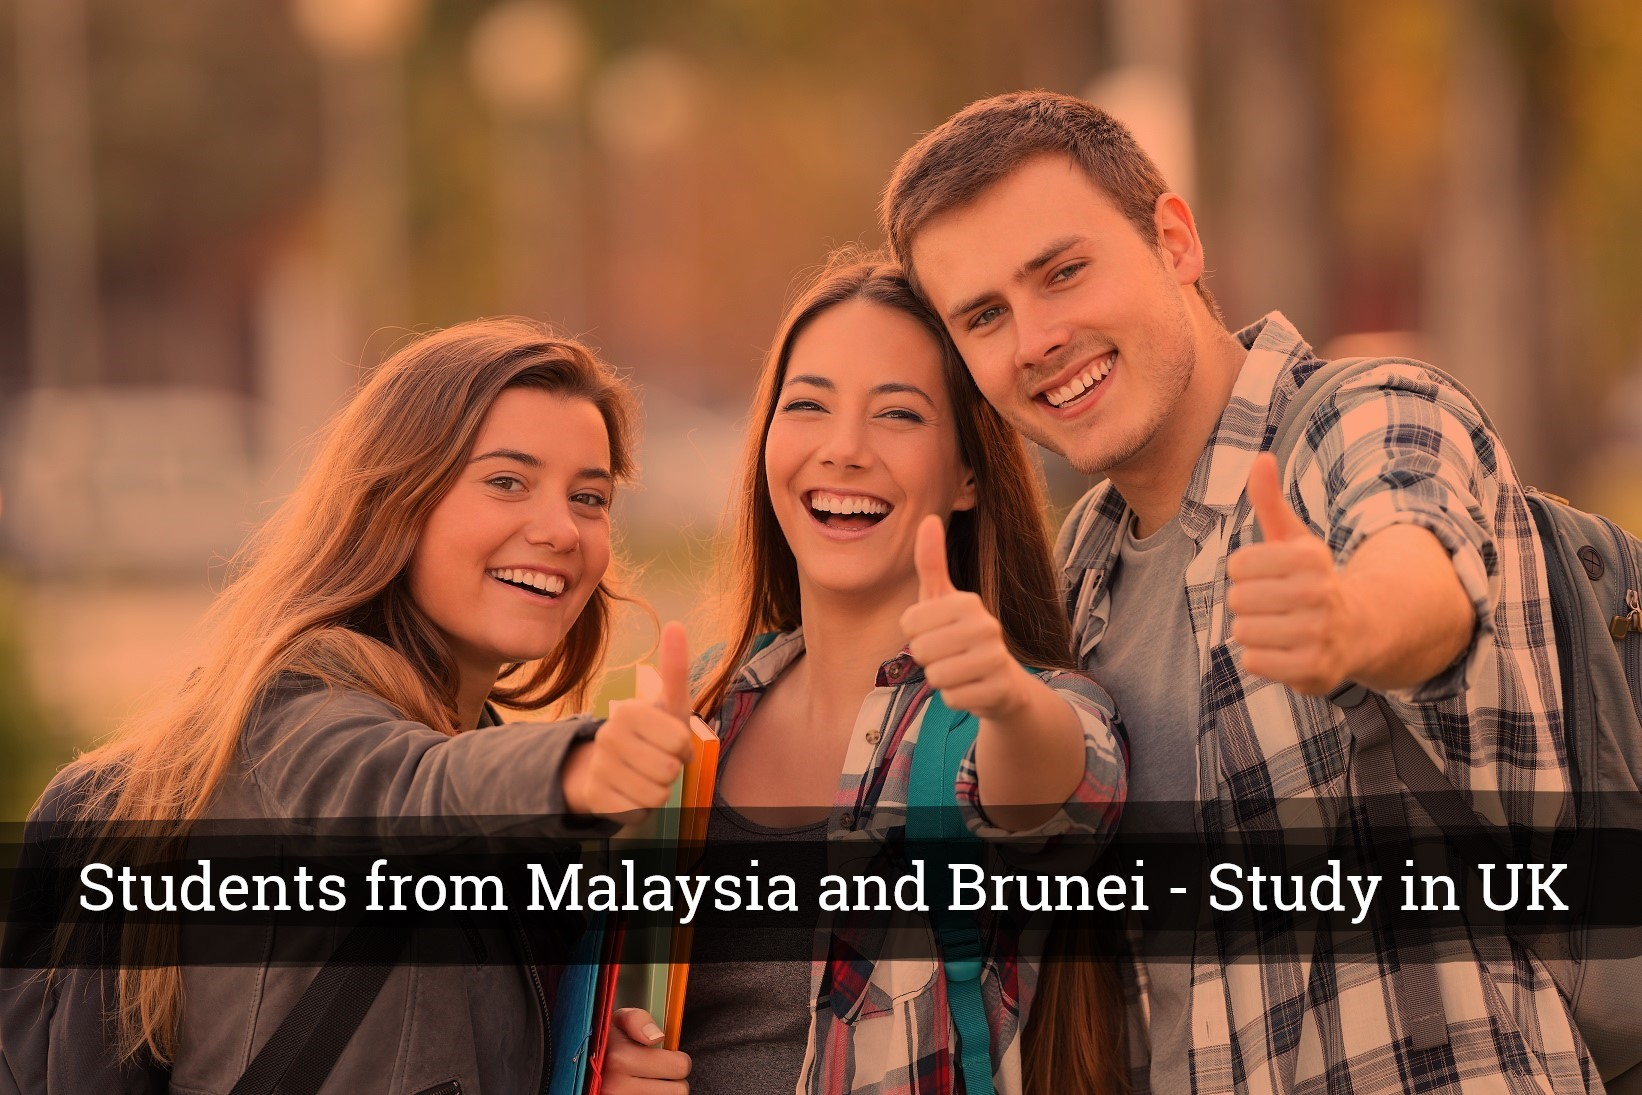 Ulearn Education welcomes students from Malaysia and Brunei to Study in UK